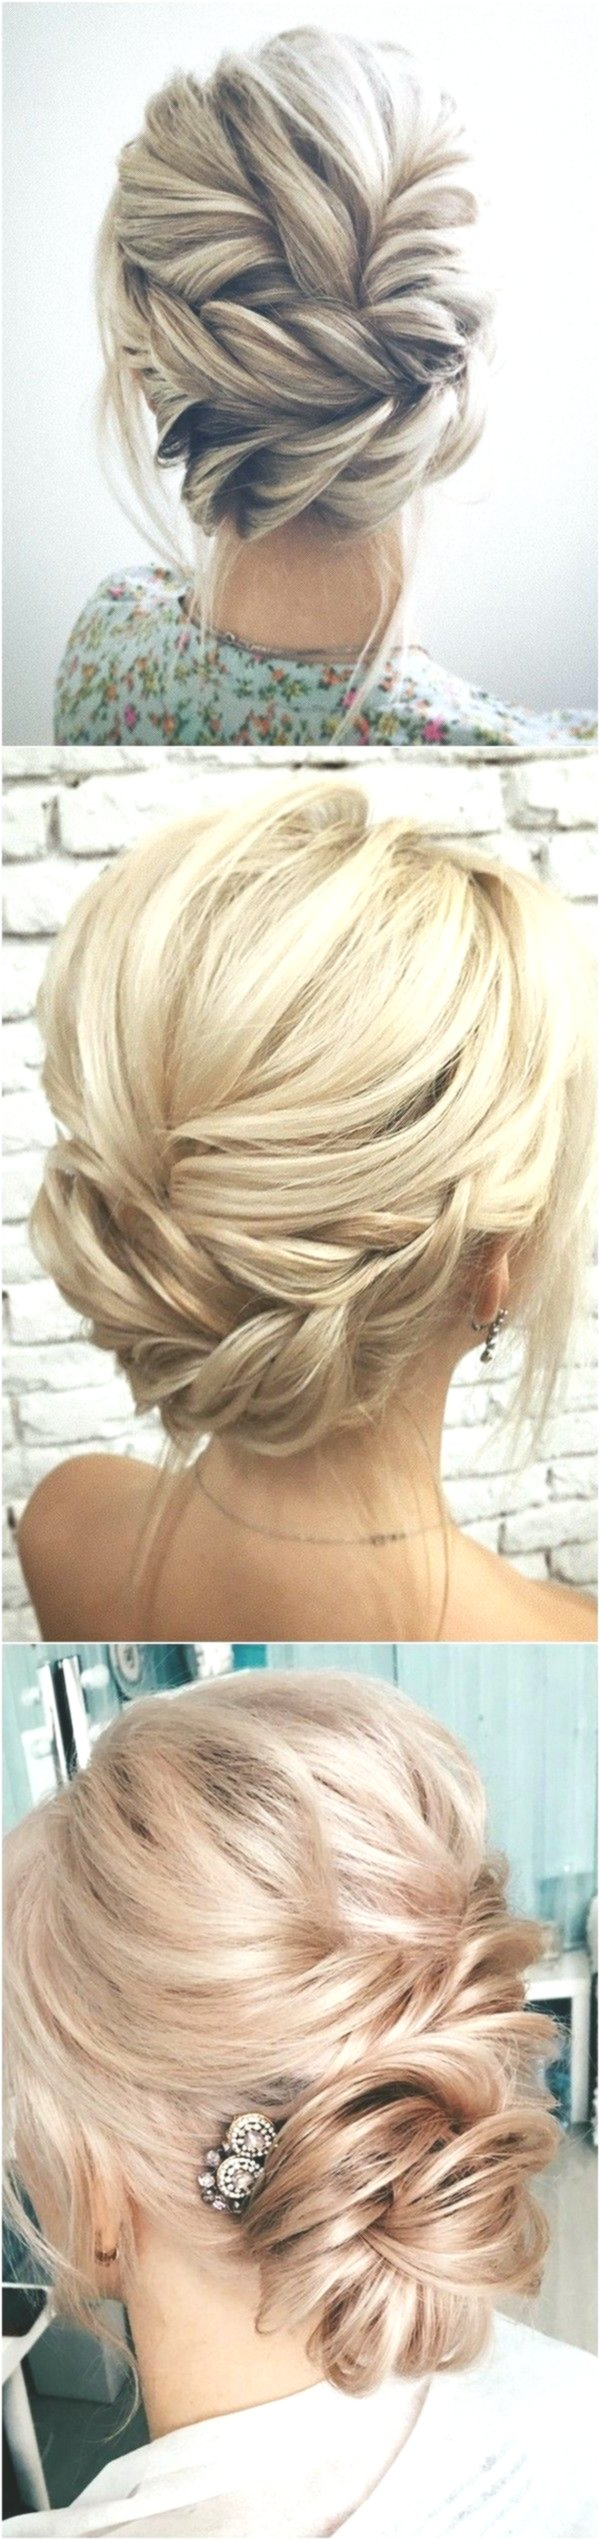 Lovely Frizz Hair Ideas - Best Of Frizz Hair Reviews